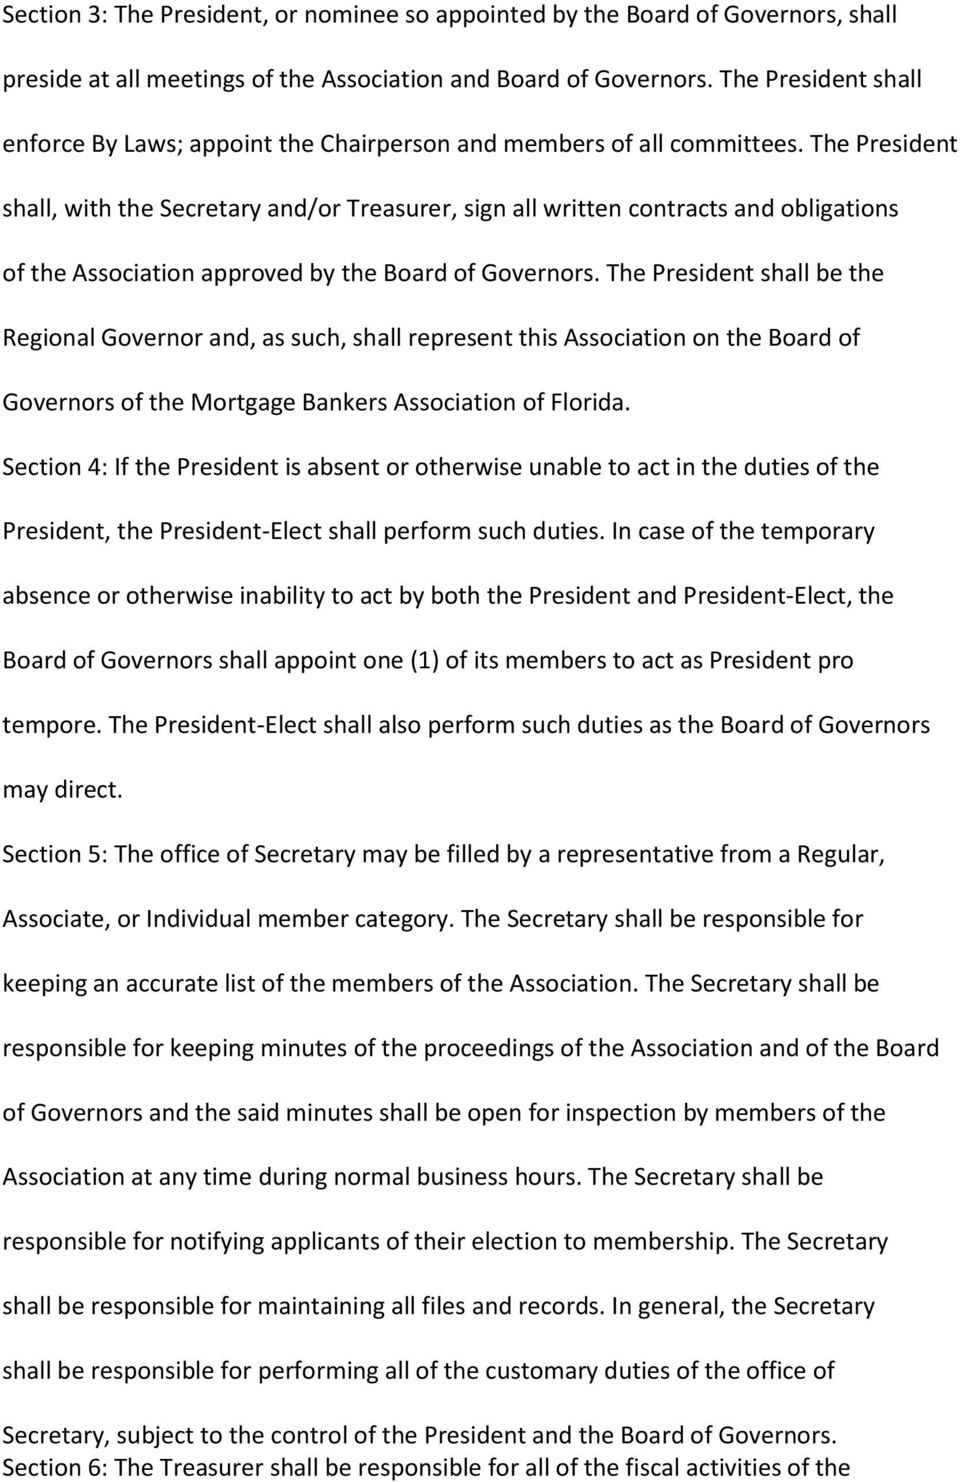 The President shall, with the Secretary and/or Treasurer, sign all written contracts and obligations of the Association approved by the Board of Governors.